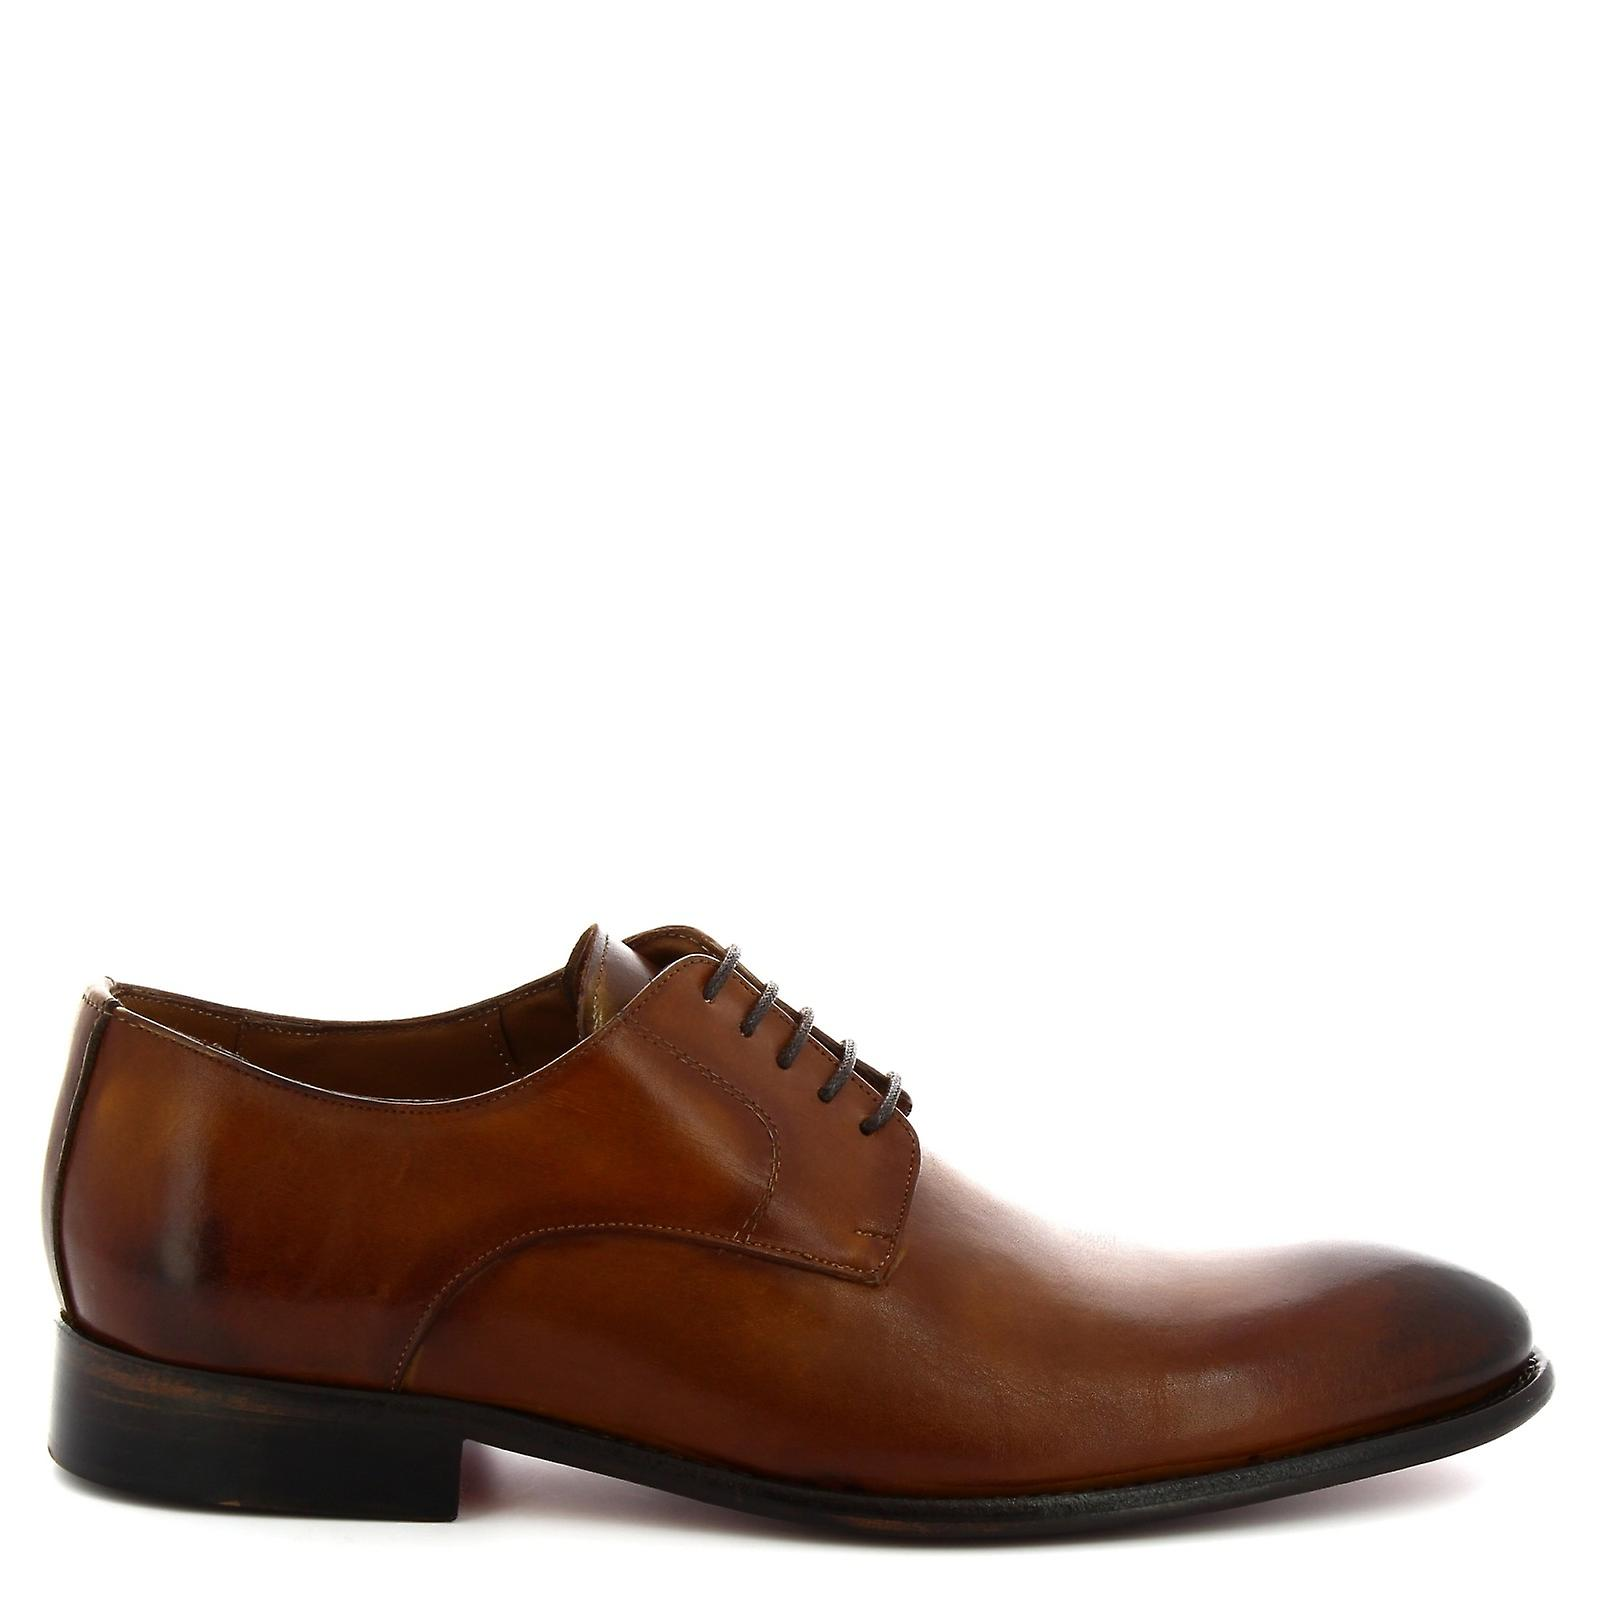 Leonardo Shoes Men's handmade round toe lace up derby shoes tan calf leather